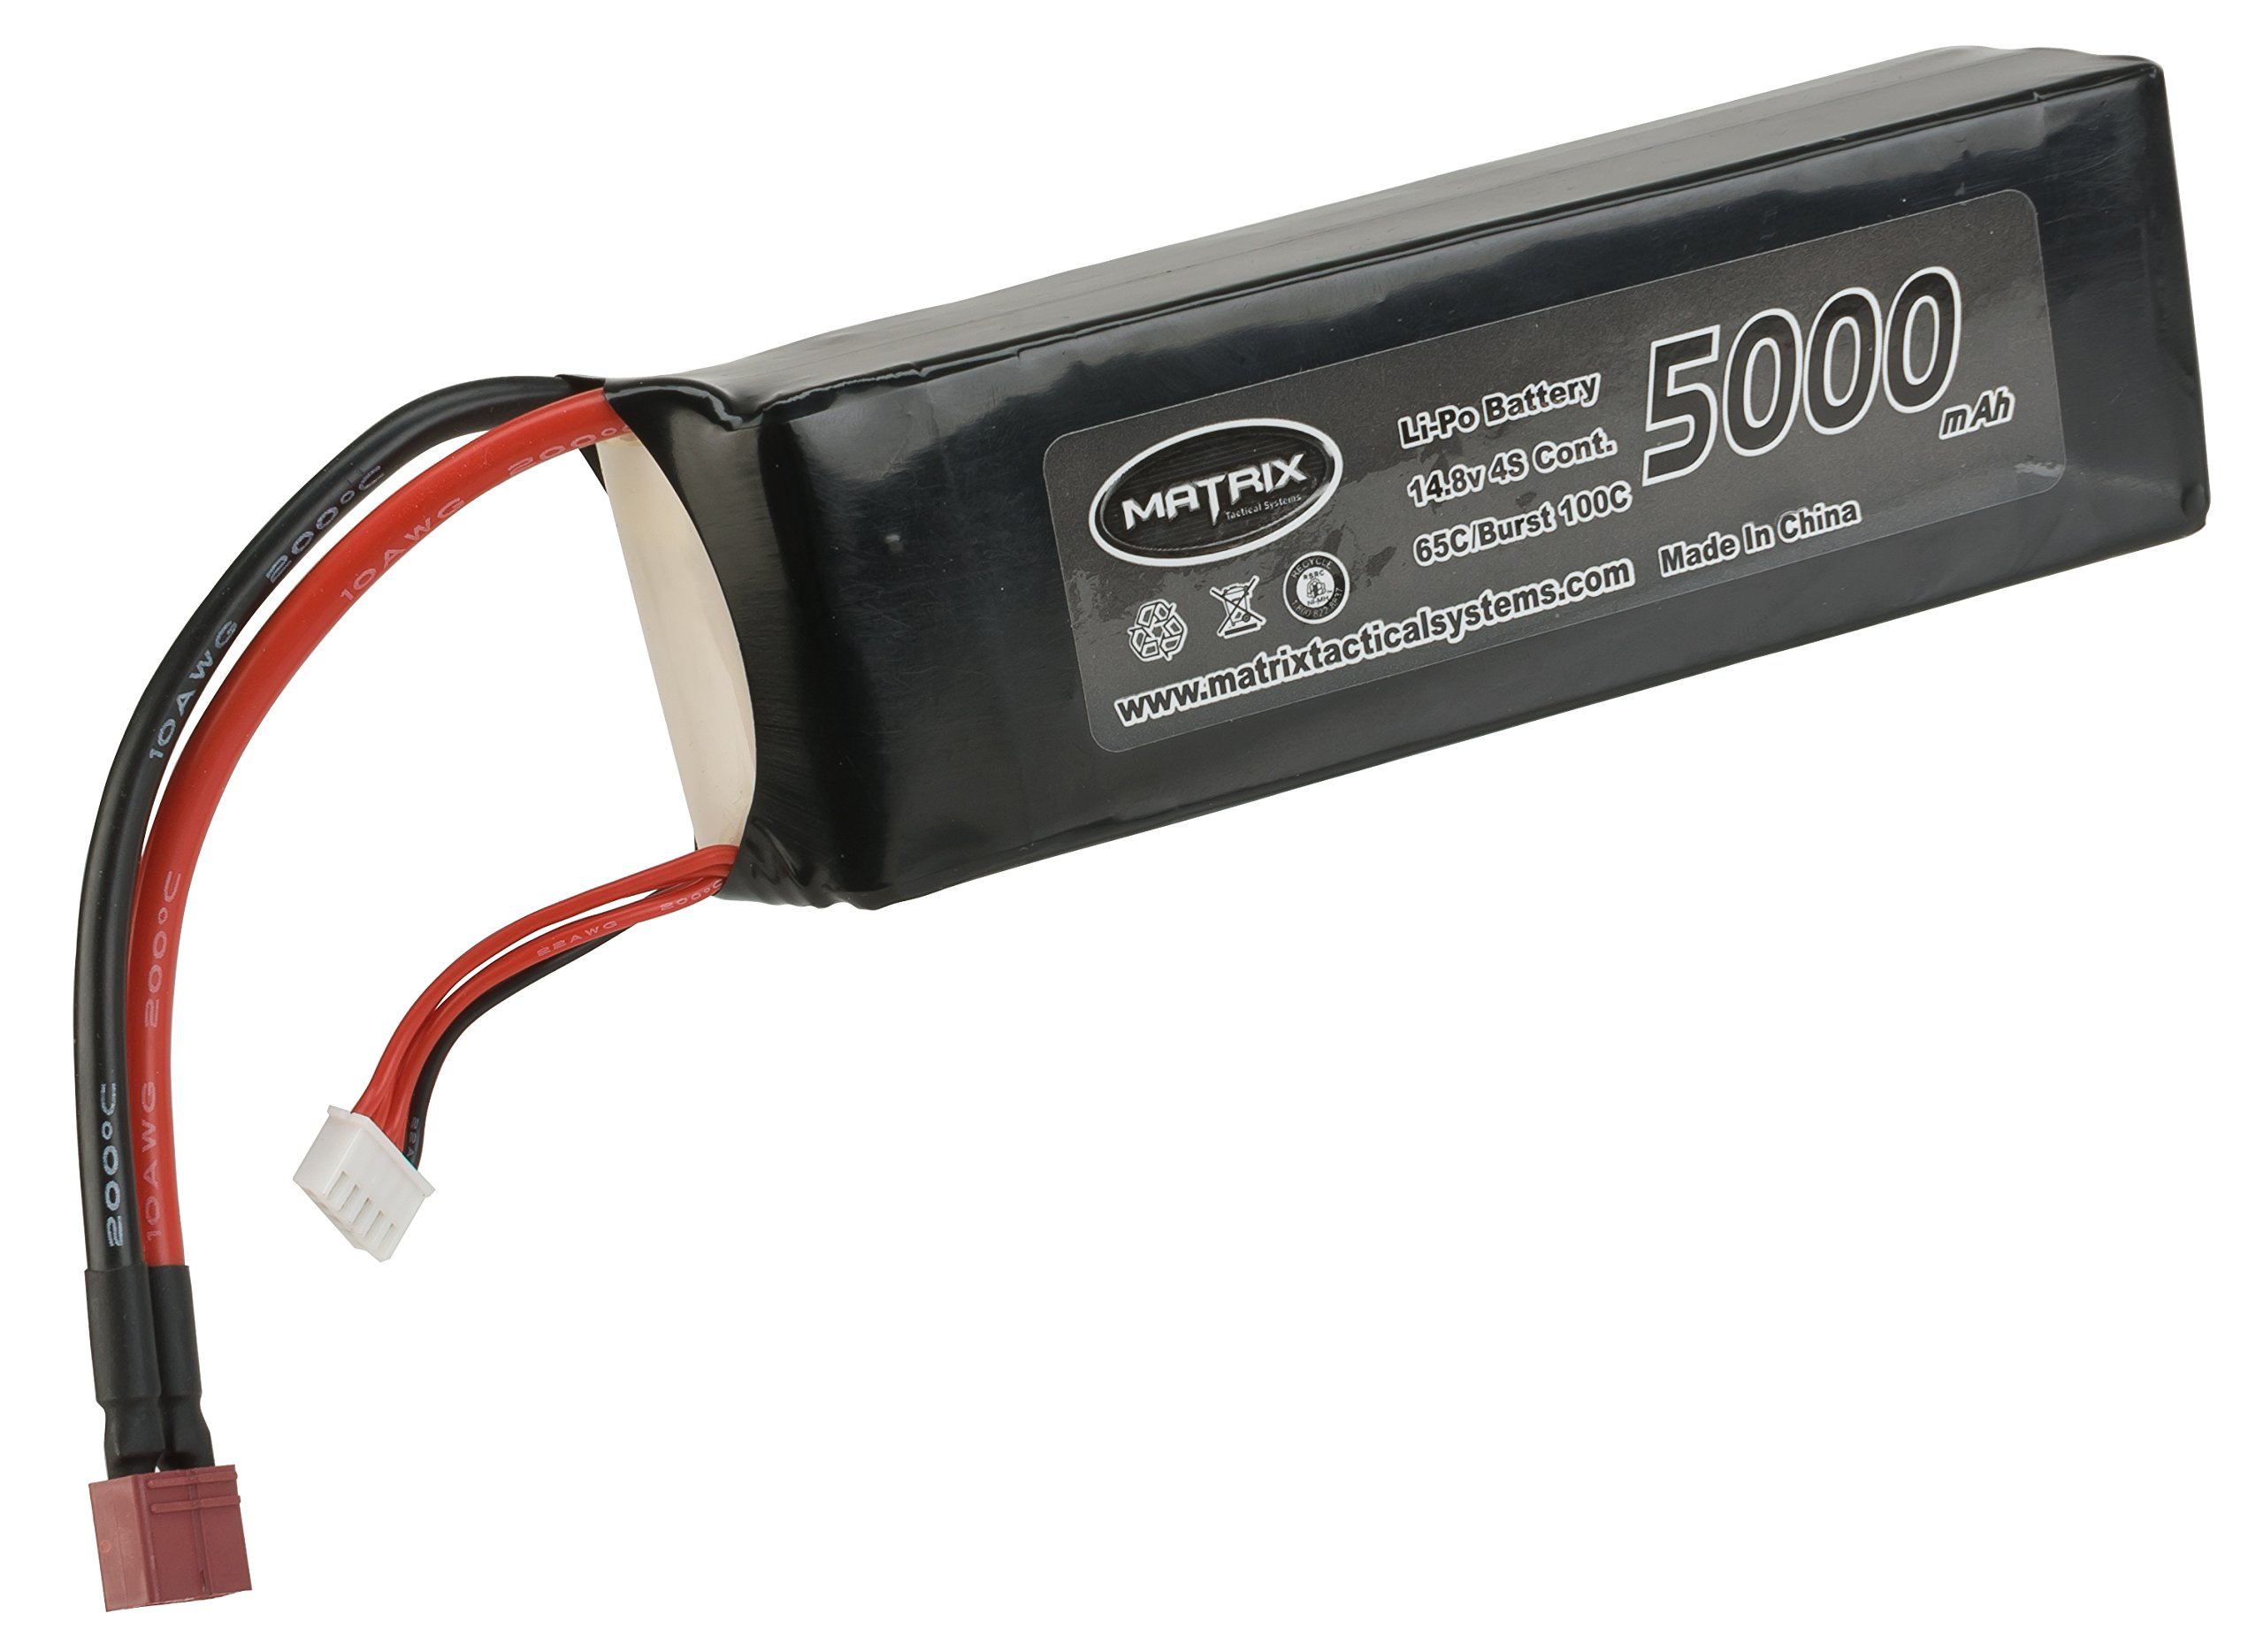 Evike - Matrix 14.8V 5000 mAh 65C ''Purpose Built'' LiPo (Lithium Polymer) Battery - Standard Deans Connector by Evike